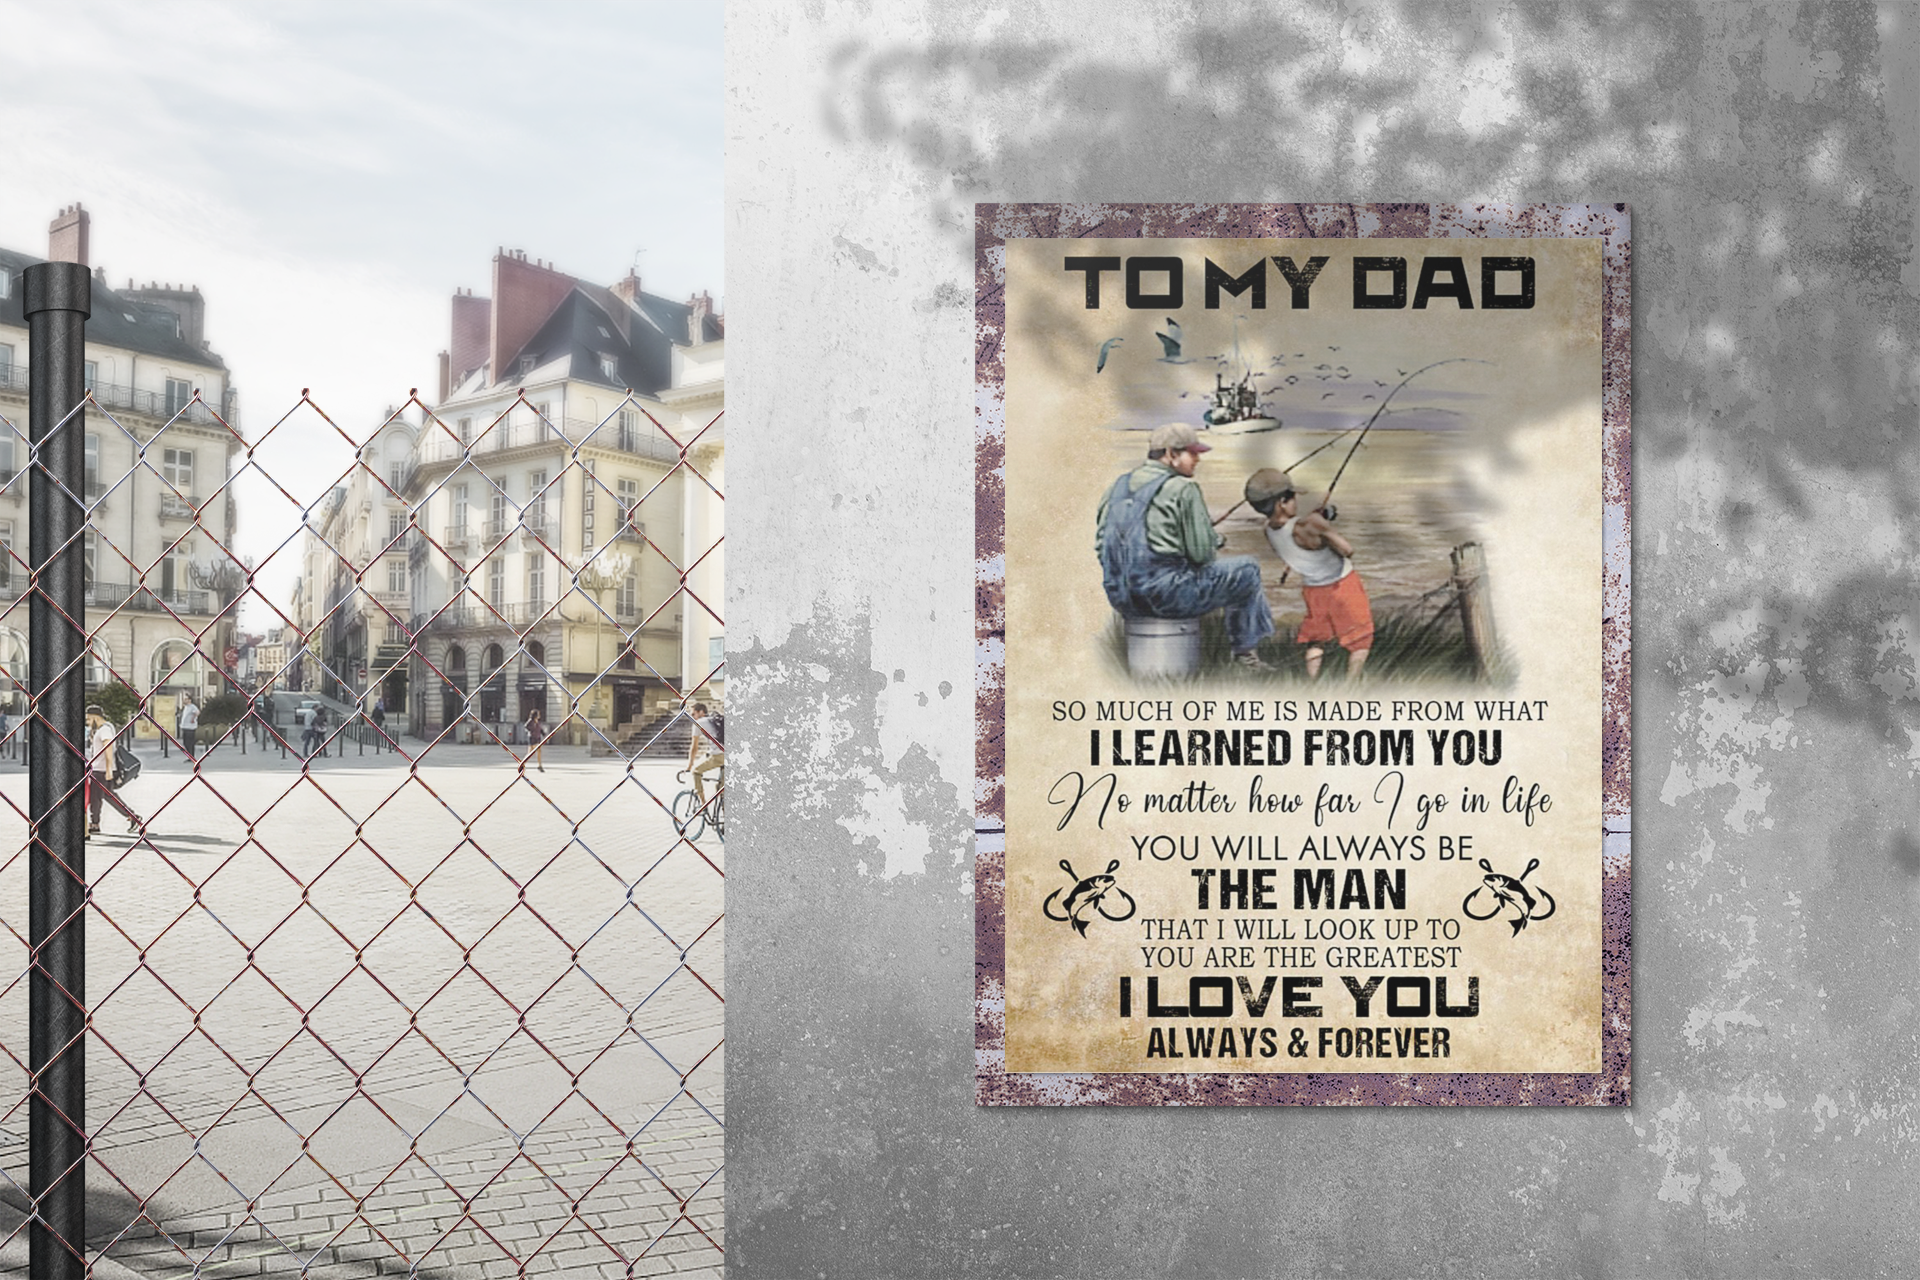 Fishing to my dad I learned from you poster 3